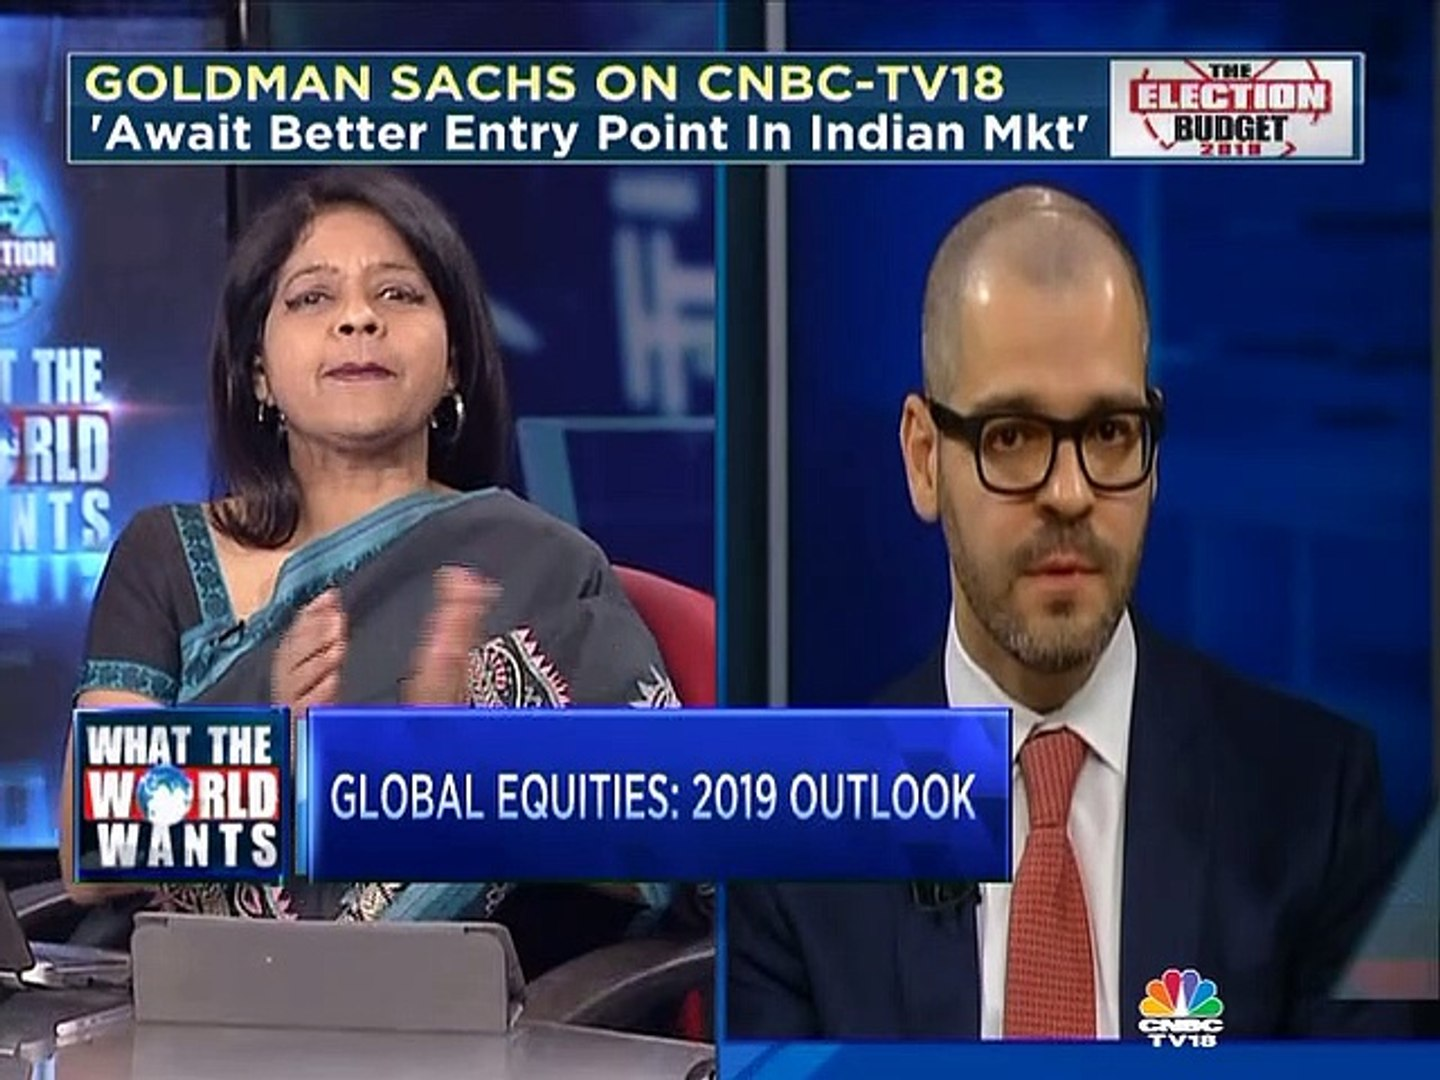 Looking for a better entry point in the Indian market, says Caesar Maasry  of Goldman Sachs